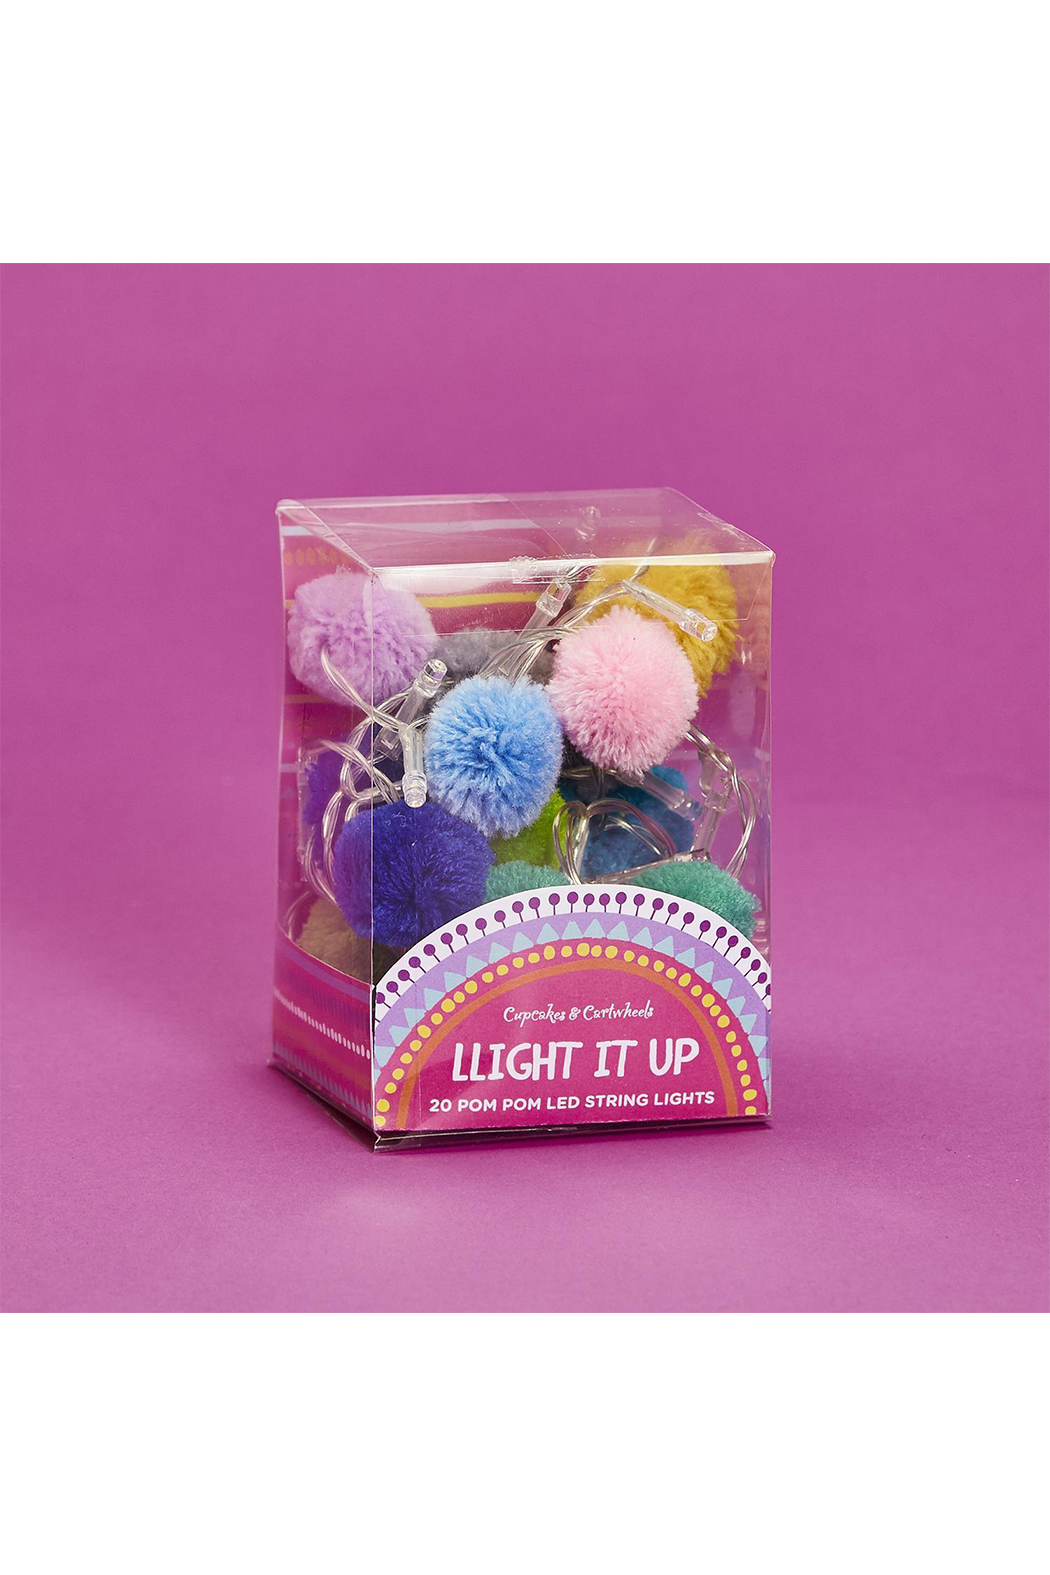 Cupcakes and Cartwheels Light It Up 20 Pom Pom LED String Lights - Main Image